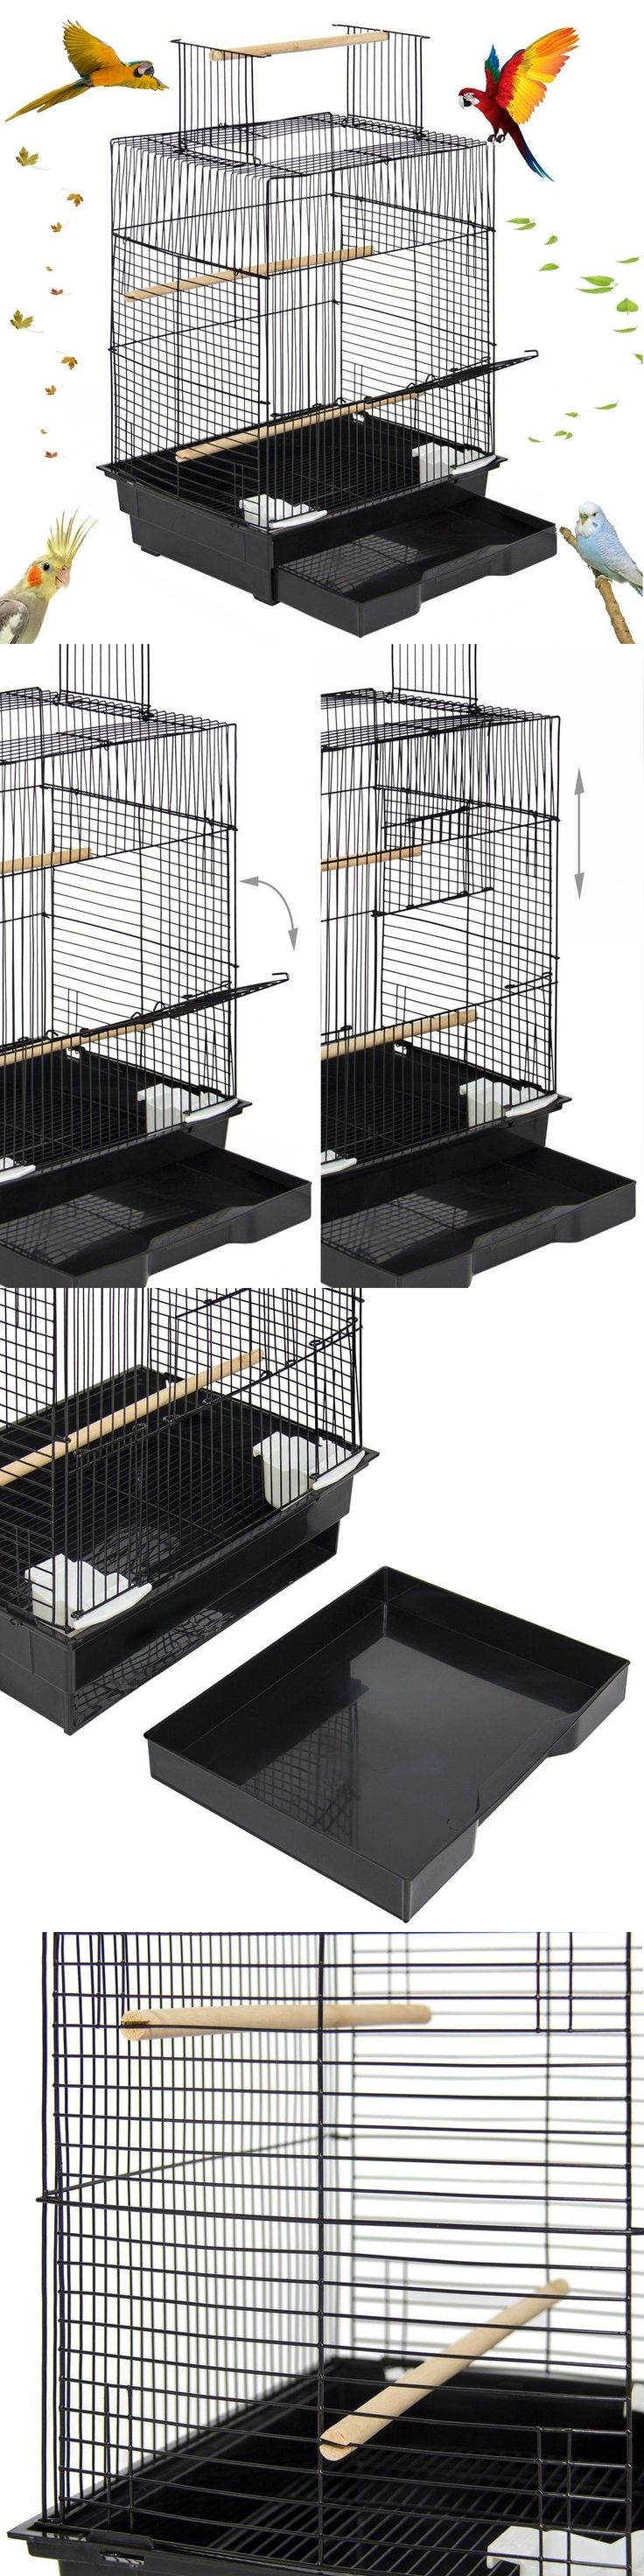 Cages 46289: Bird Cage With Open Play Top Parrot Small Birds Parakeets Habitat Caged Macaw -> BUY IT NOW ONLY: $46.99 on eBay!